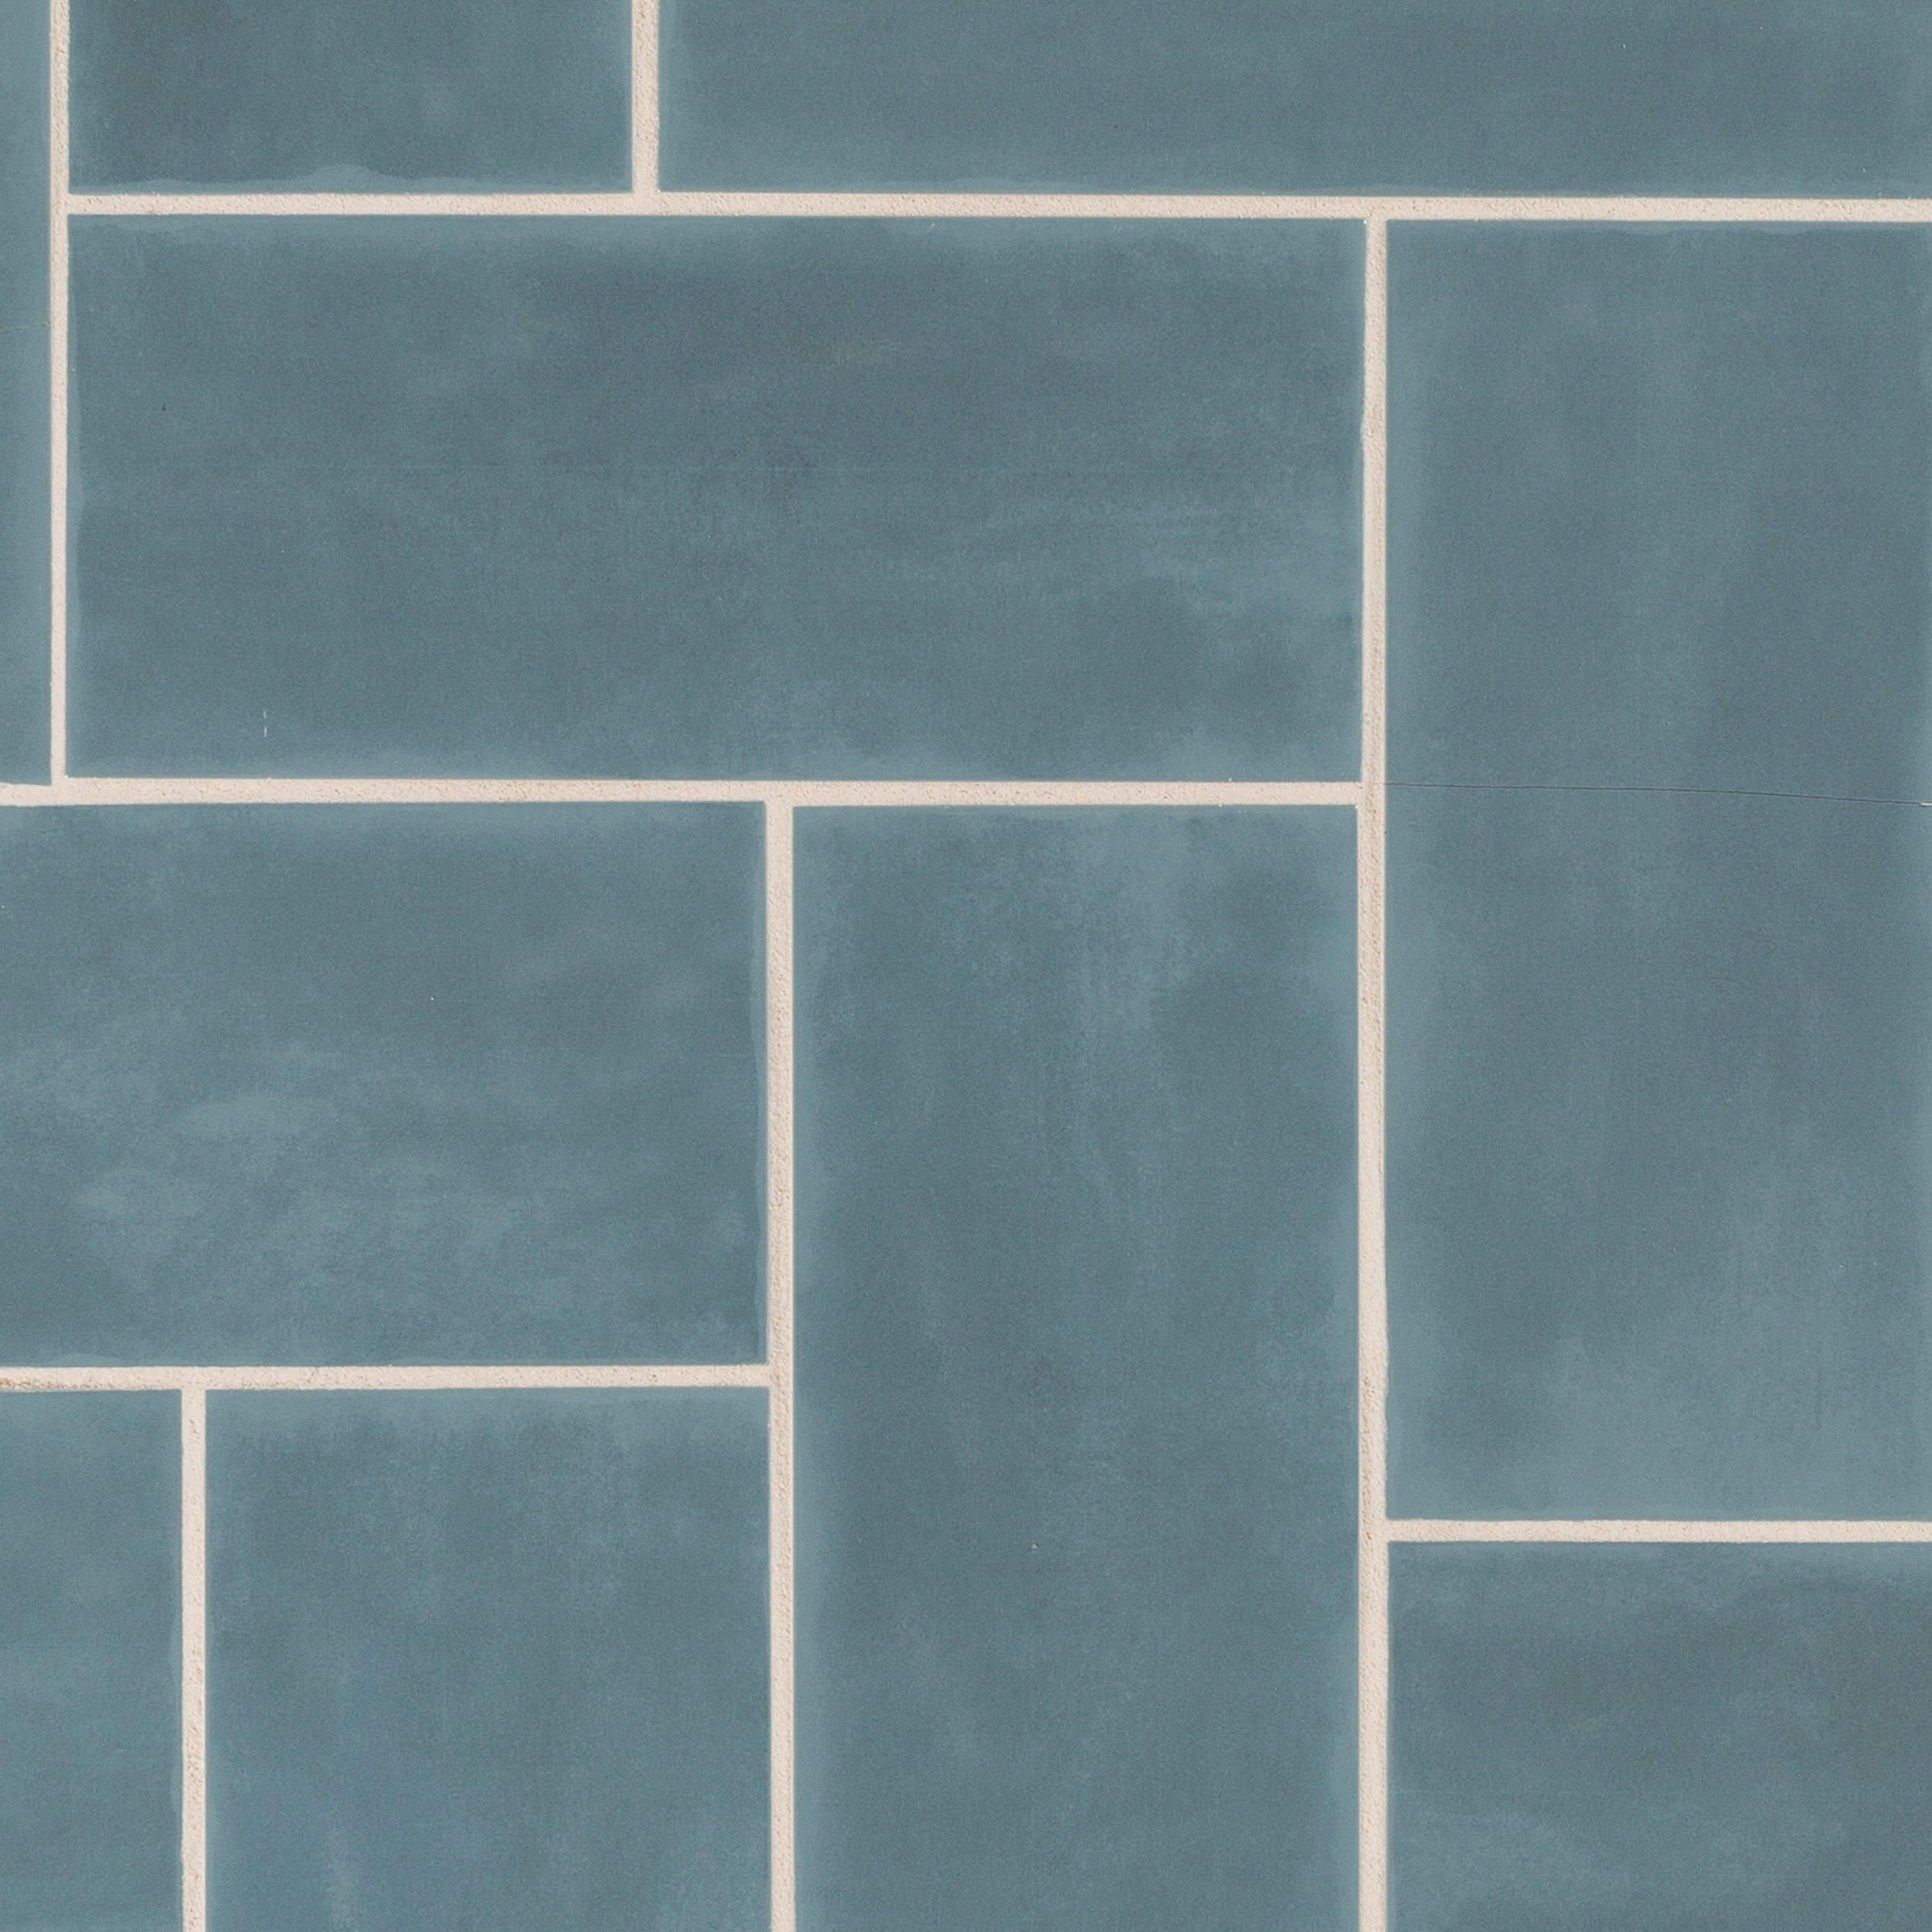 Maiolica Bungalow Blue Wall Tile Blue Tile Wall Shower Wall Tile Wall Tiles